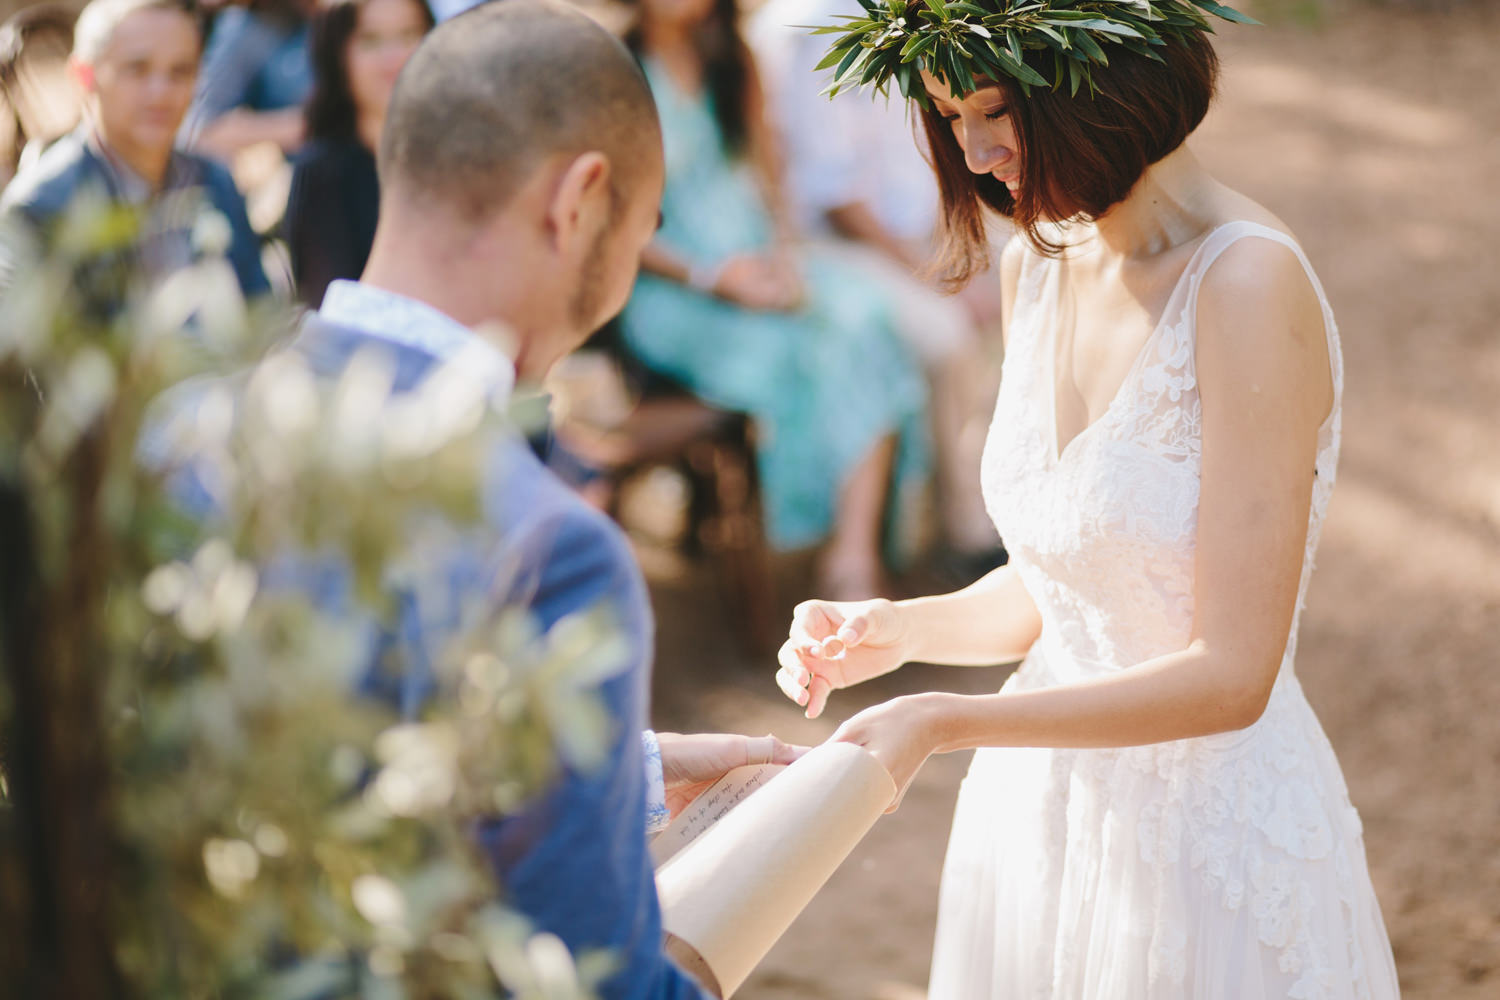 113-Barn_Wedding_Australia_Sam_Ting.jpg